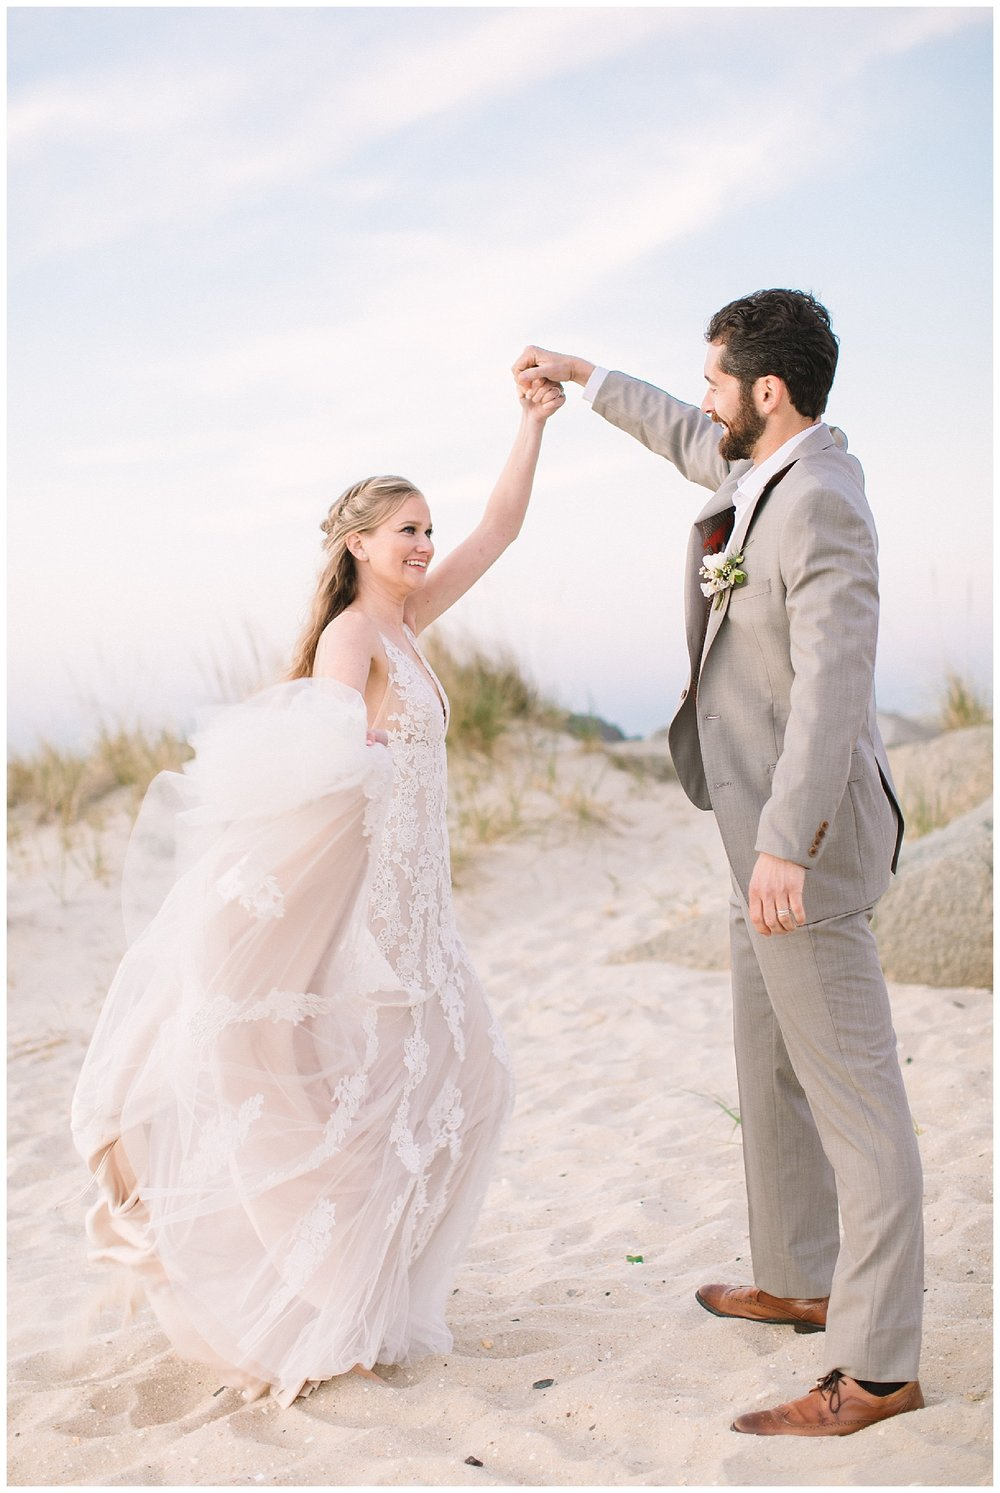 Lush Green Jersey Shore Wedding Inspiration | Sandy Hook, NJ | www.redoakweddings.com